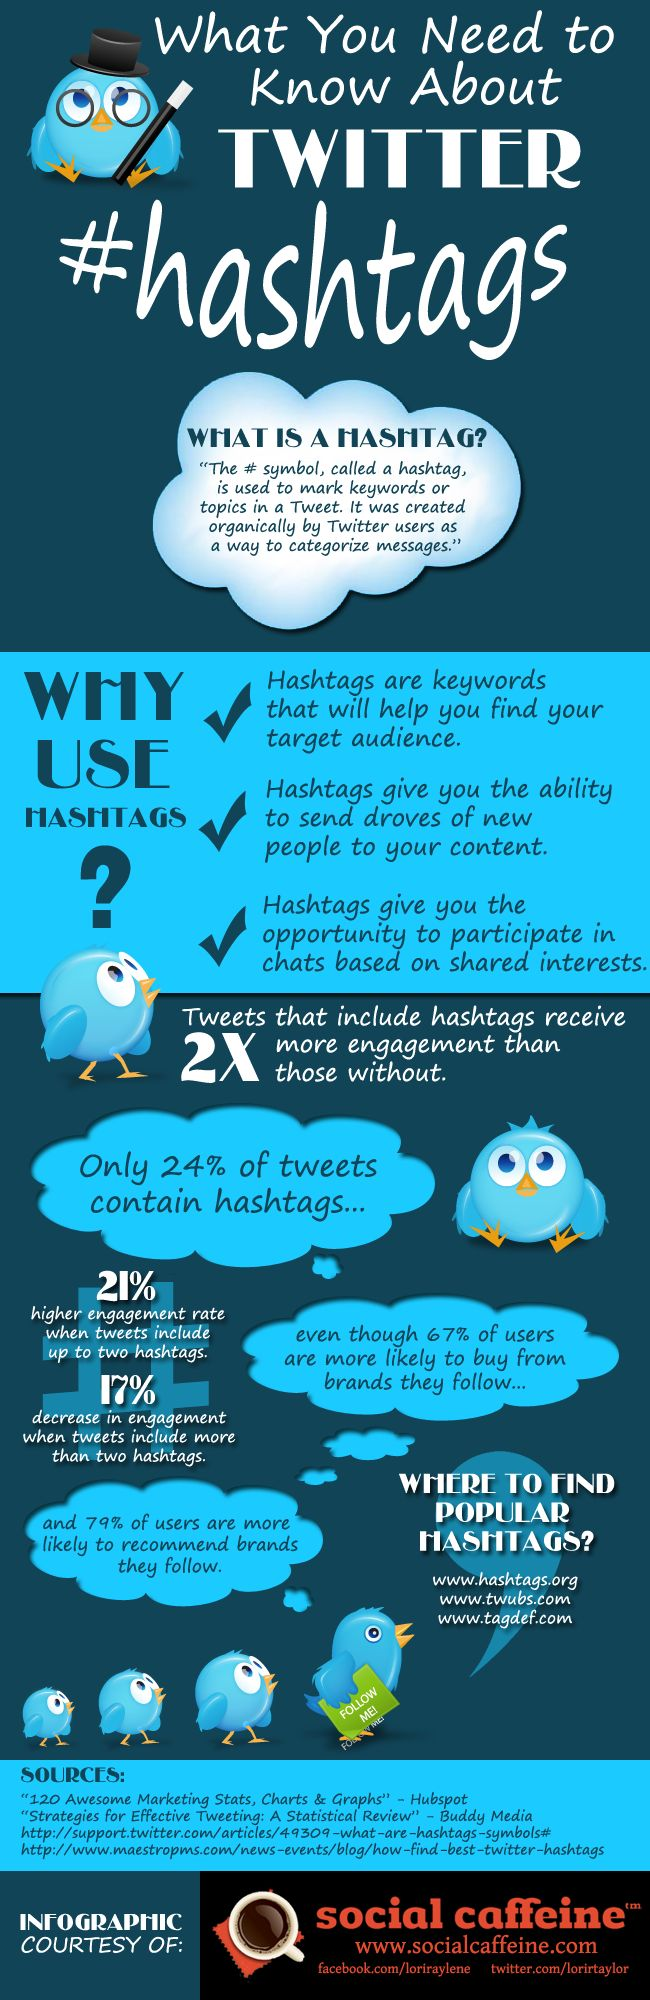 What You Need to Know About Twitter Hashtags Real Cost of Social Media #socialmedia #marketing #infographic